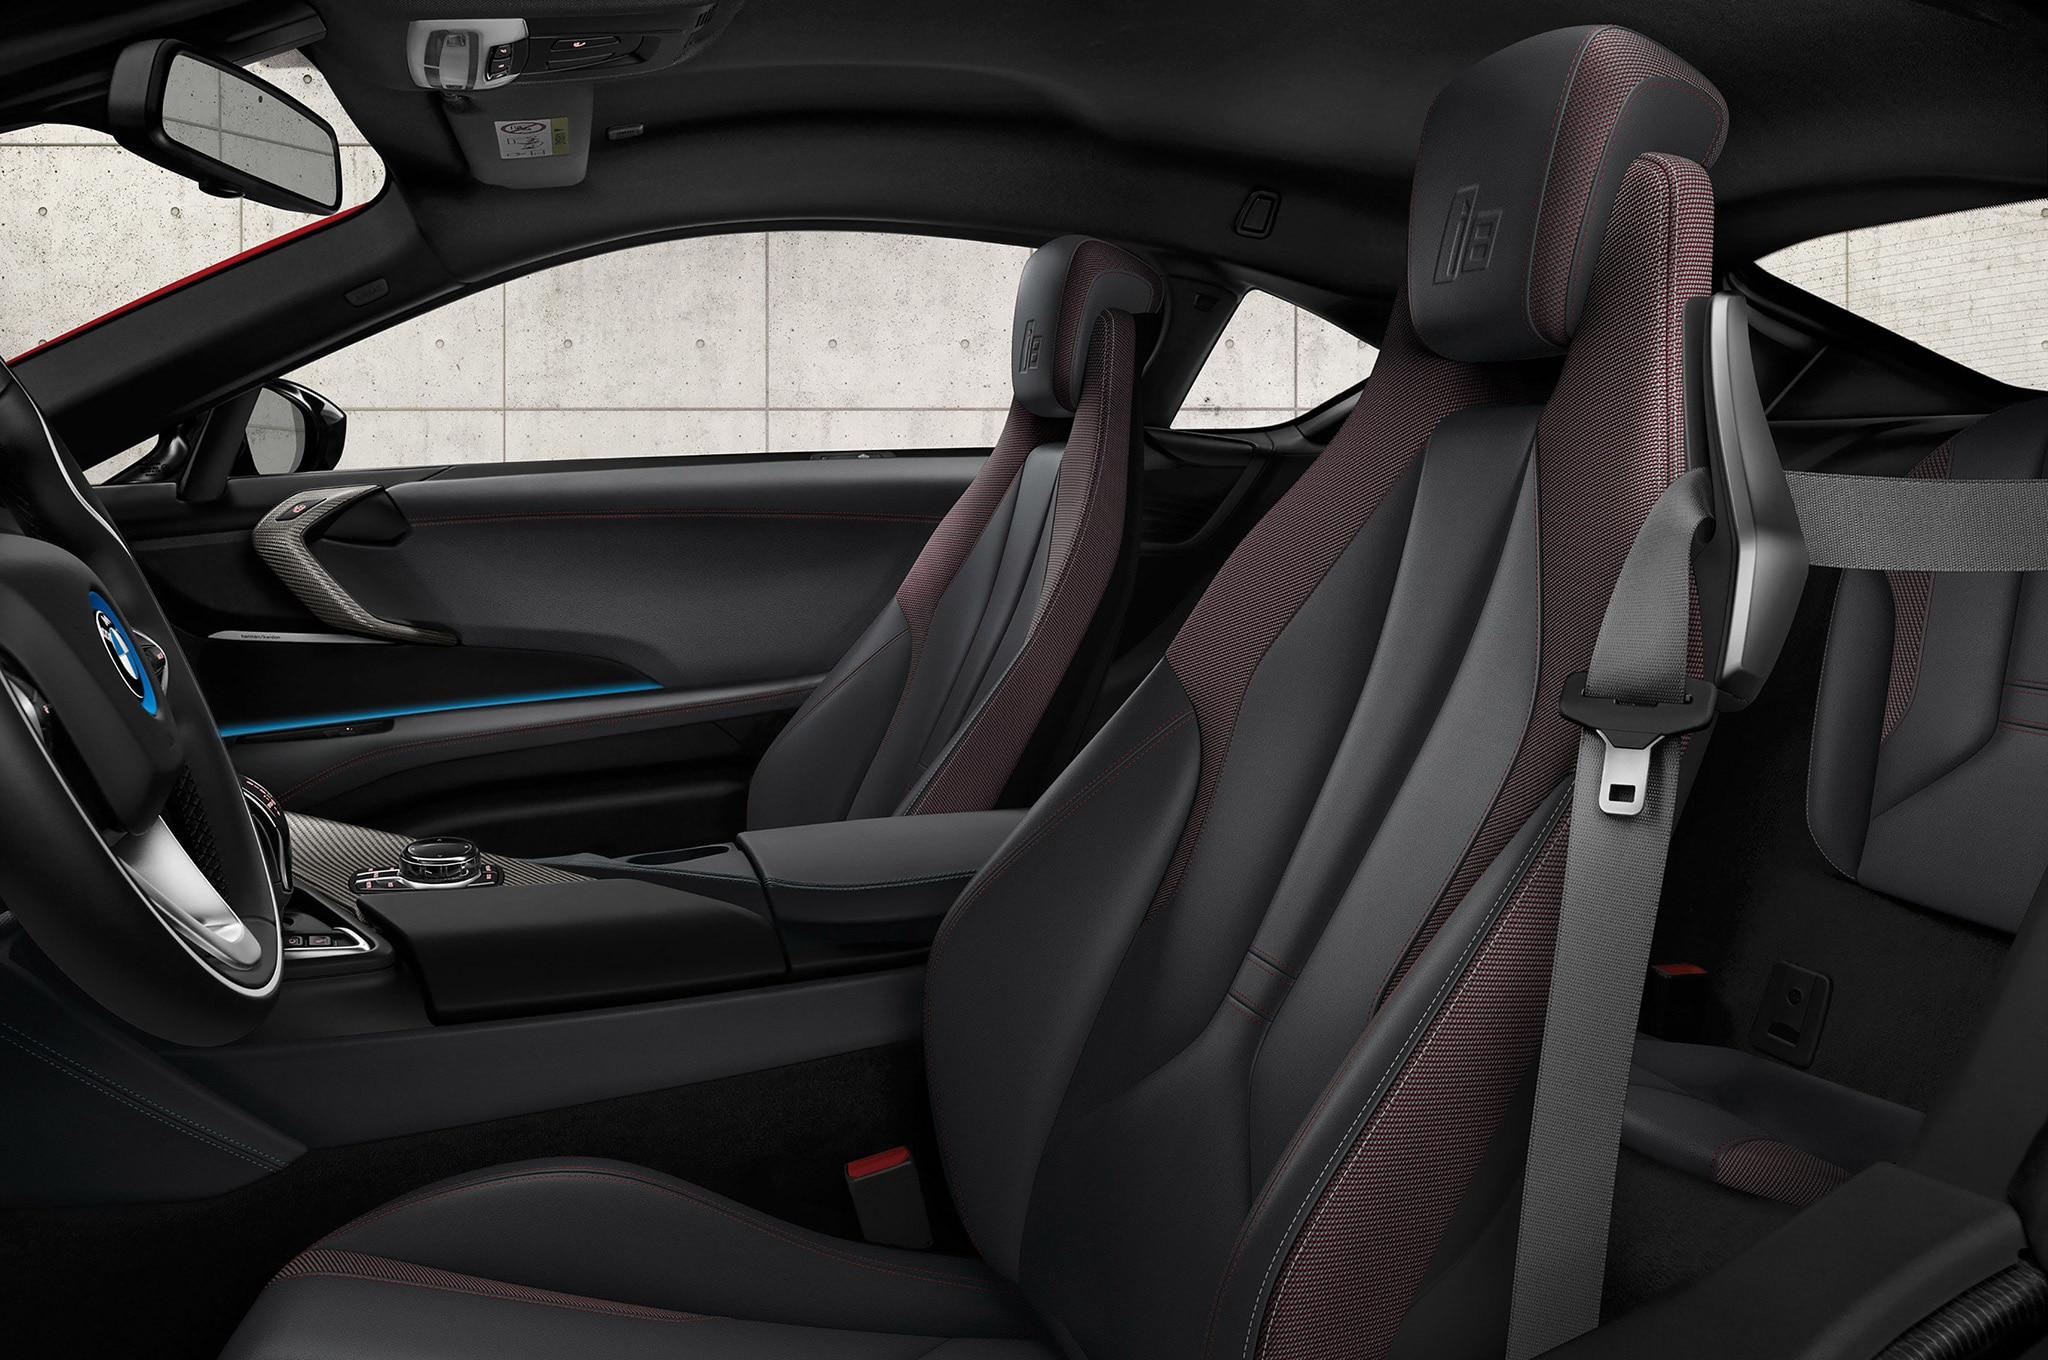 Bmw releases various special edition models including two for Bmw i8 interior